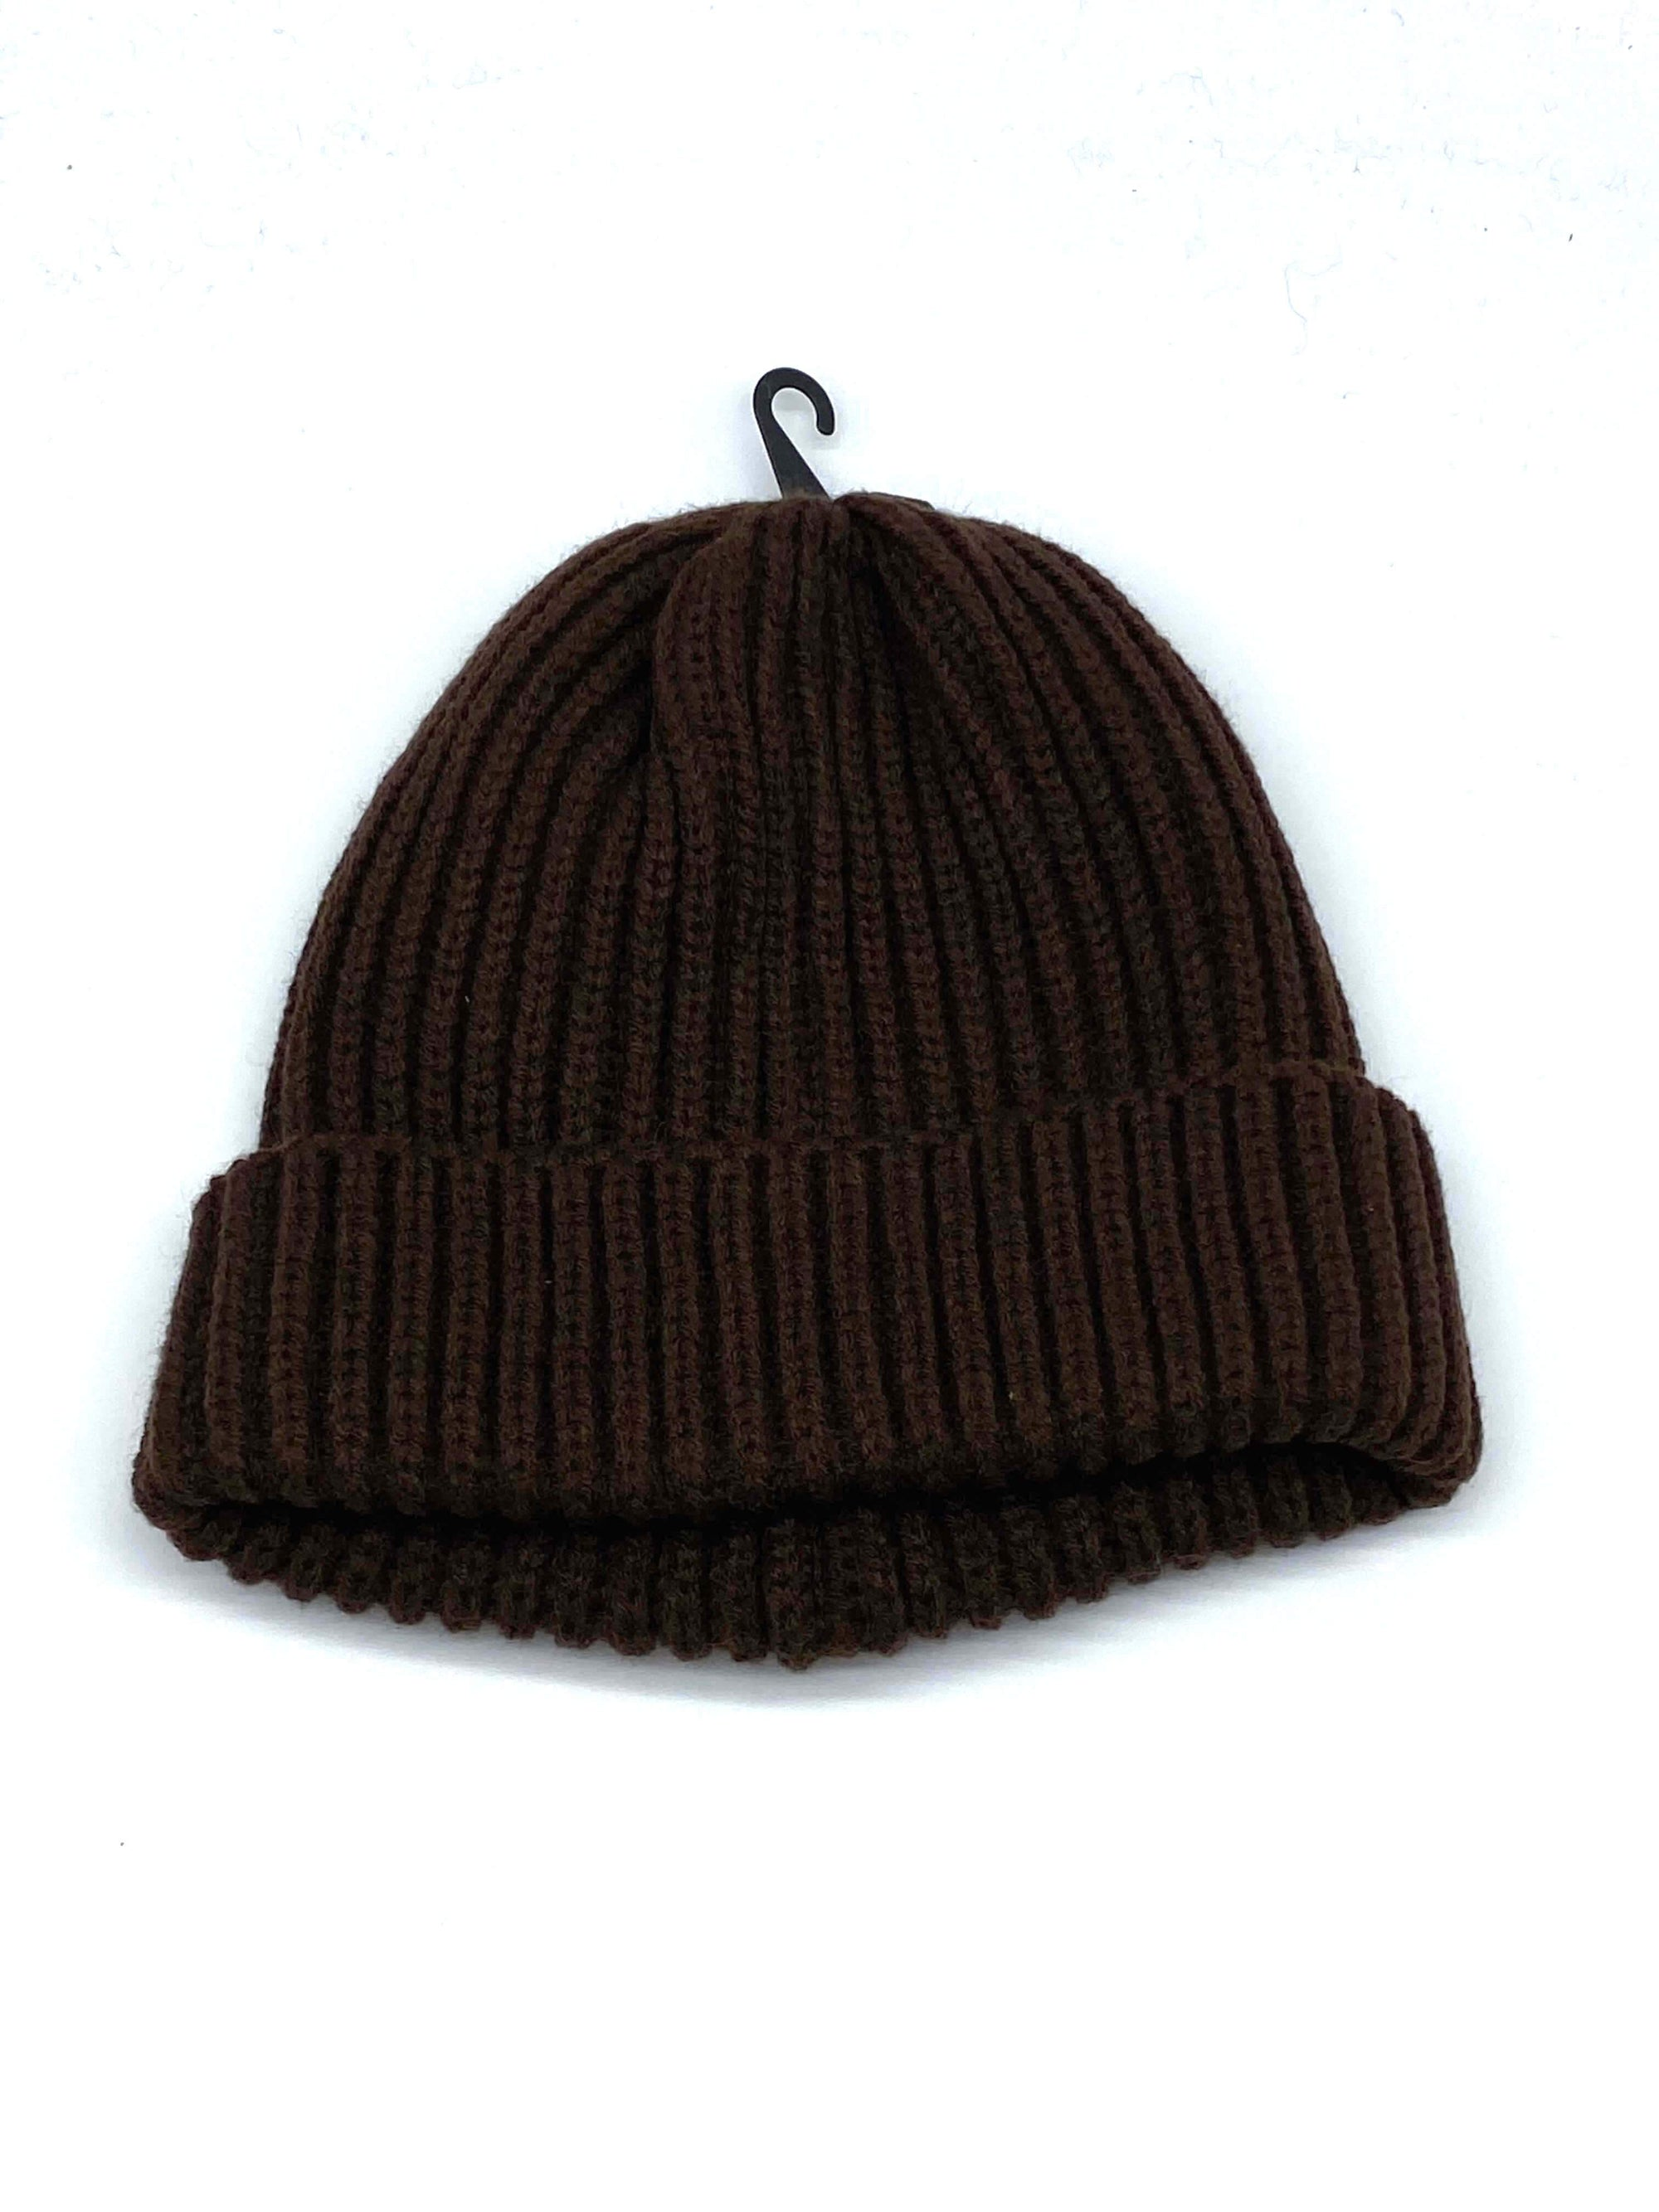 #KBW281 Plain Dark Brown Beanie